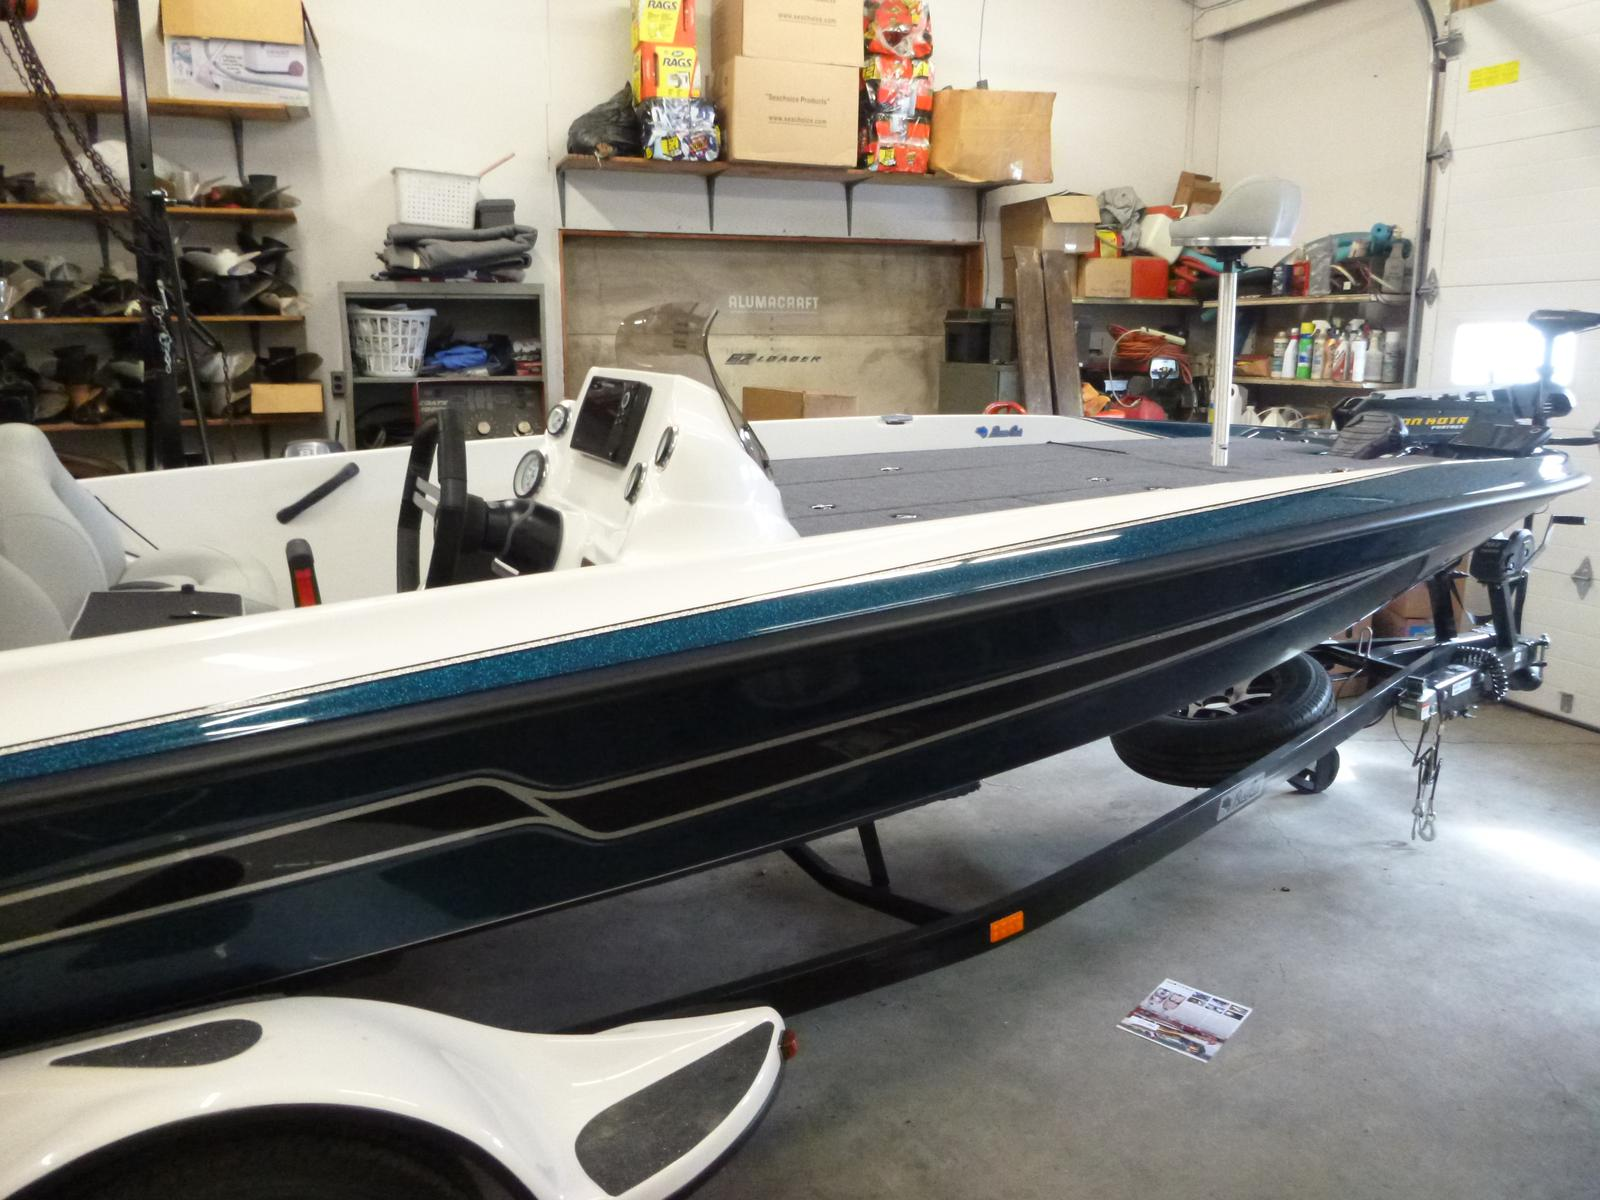 2018 bass cat boats pantera classic for sale in schenectady, nyBasscat Pantera Wire Diagram 2 #7